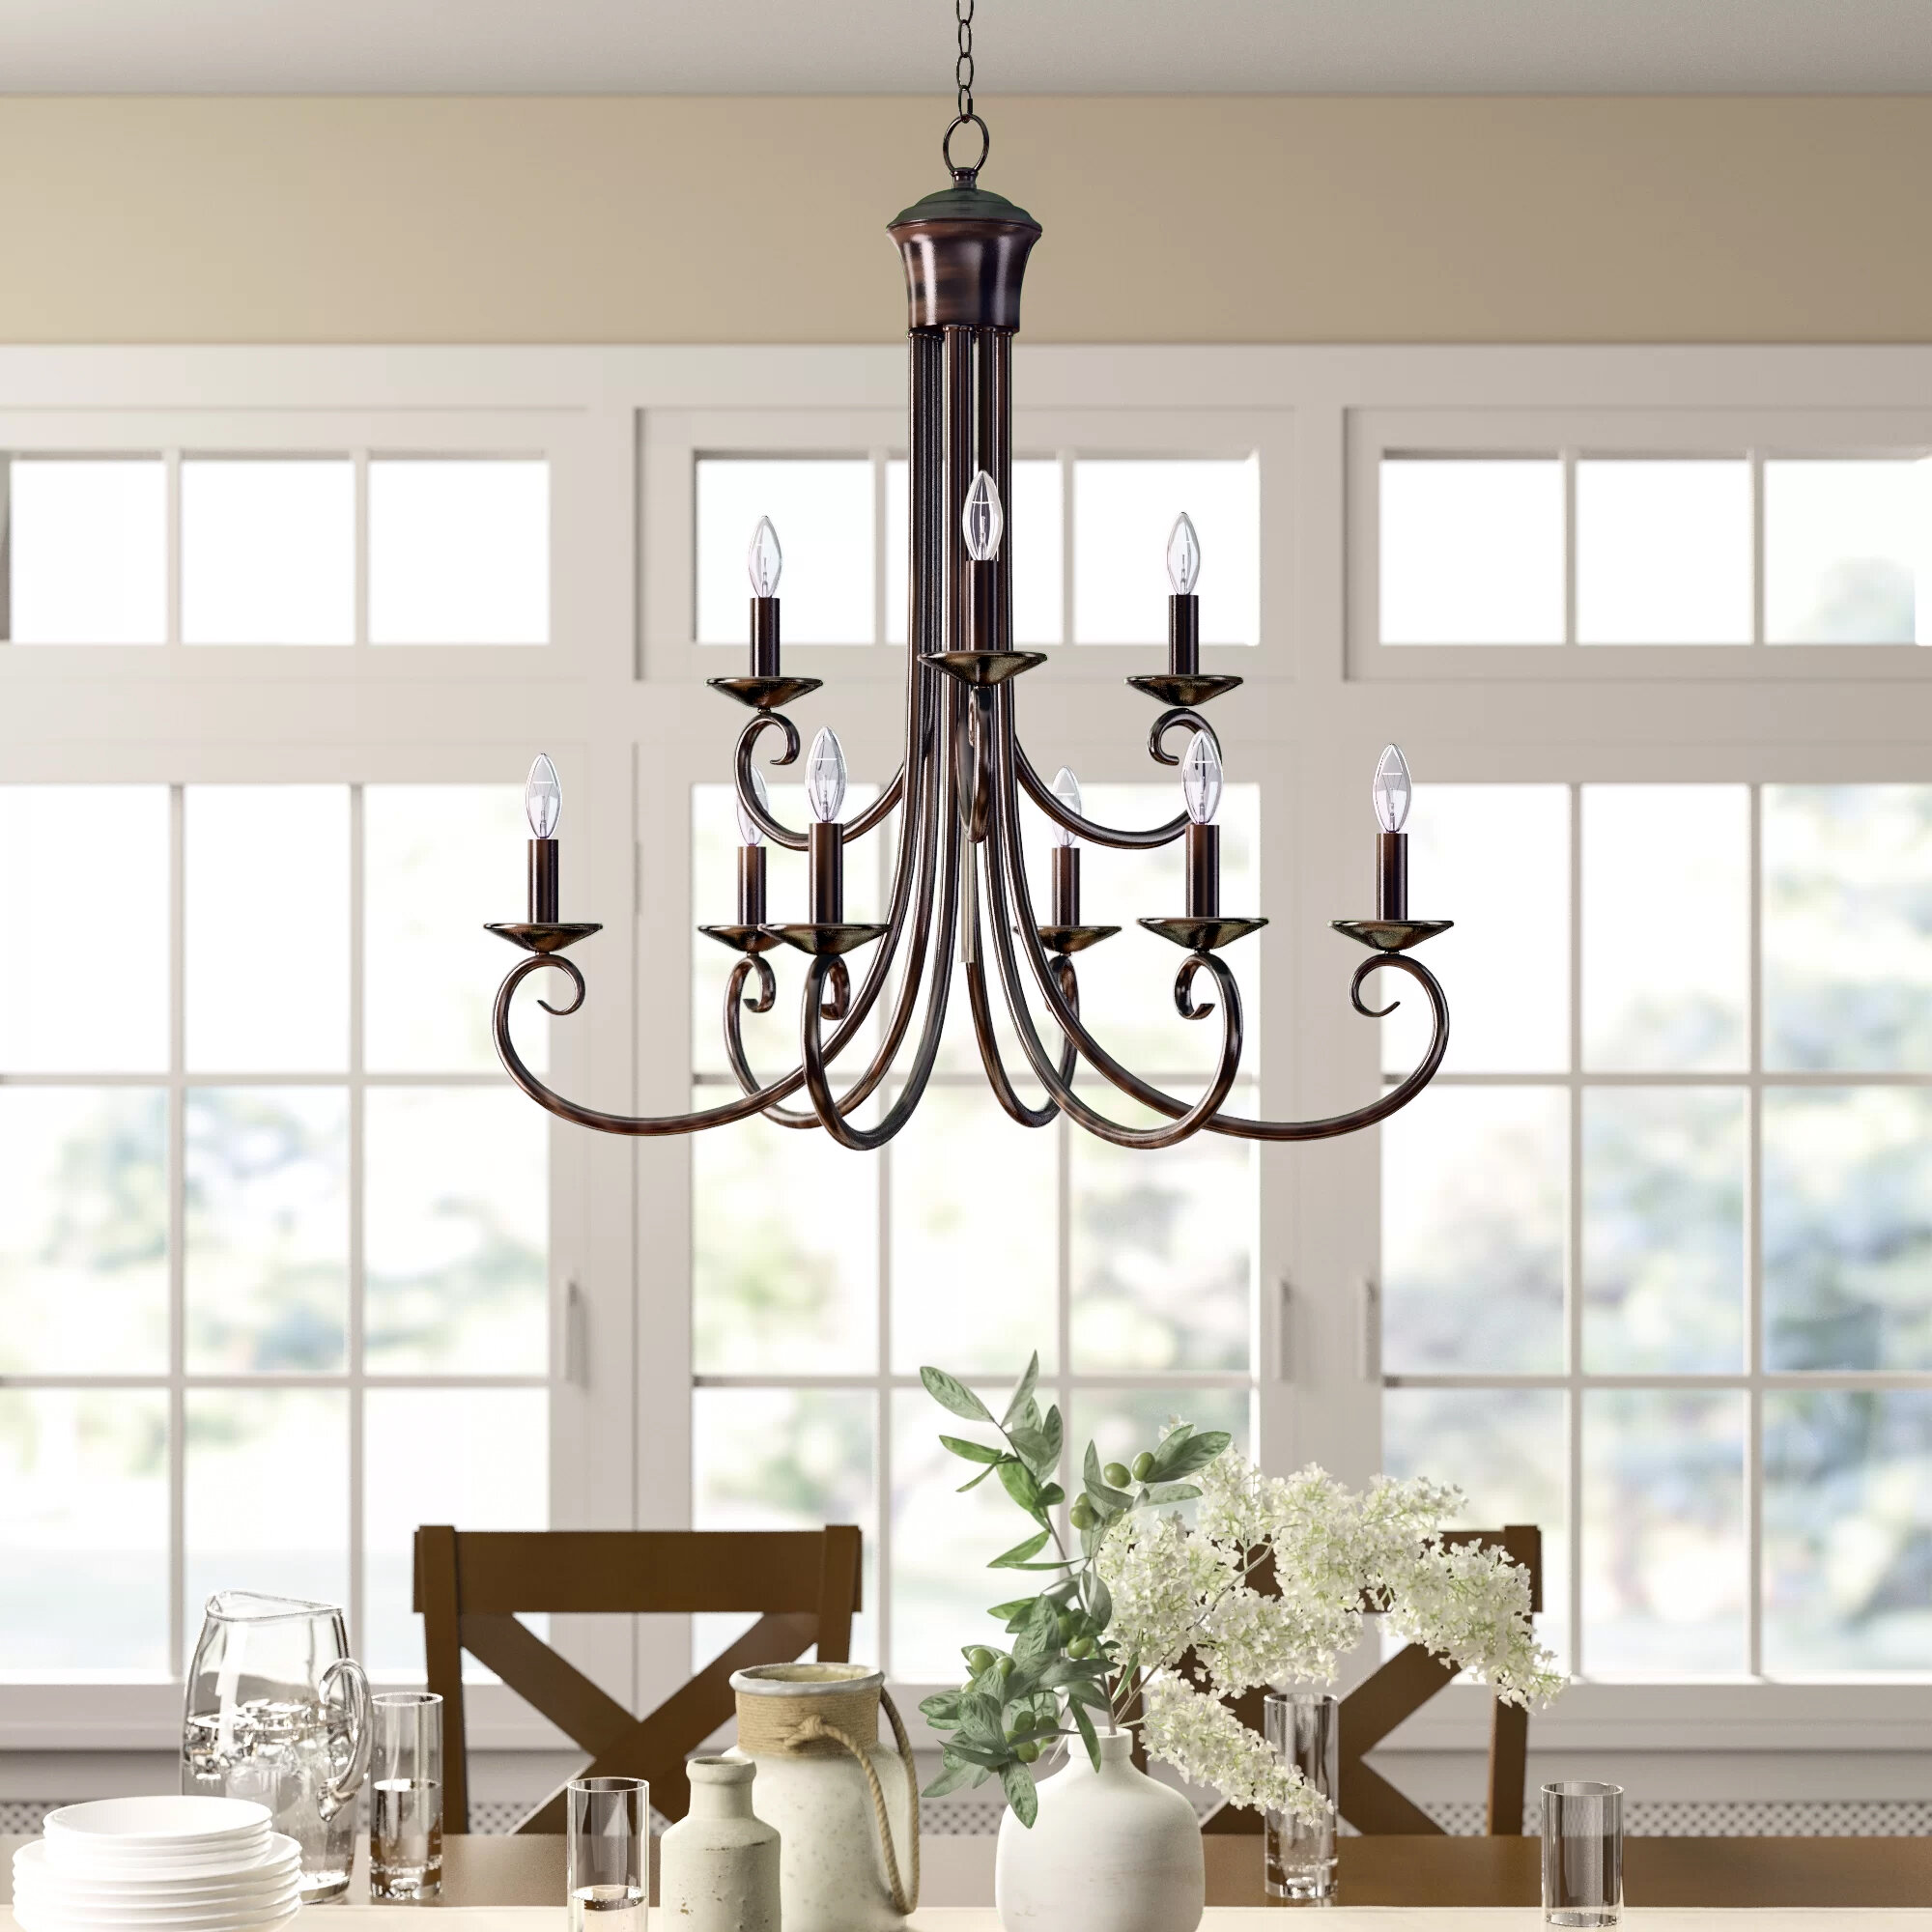 Charlton Home Kenedy 9 Light Candle Style Tiered Chandelier Reviews Wayfair